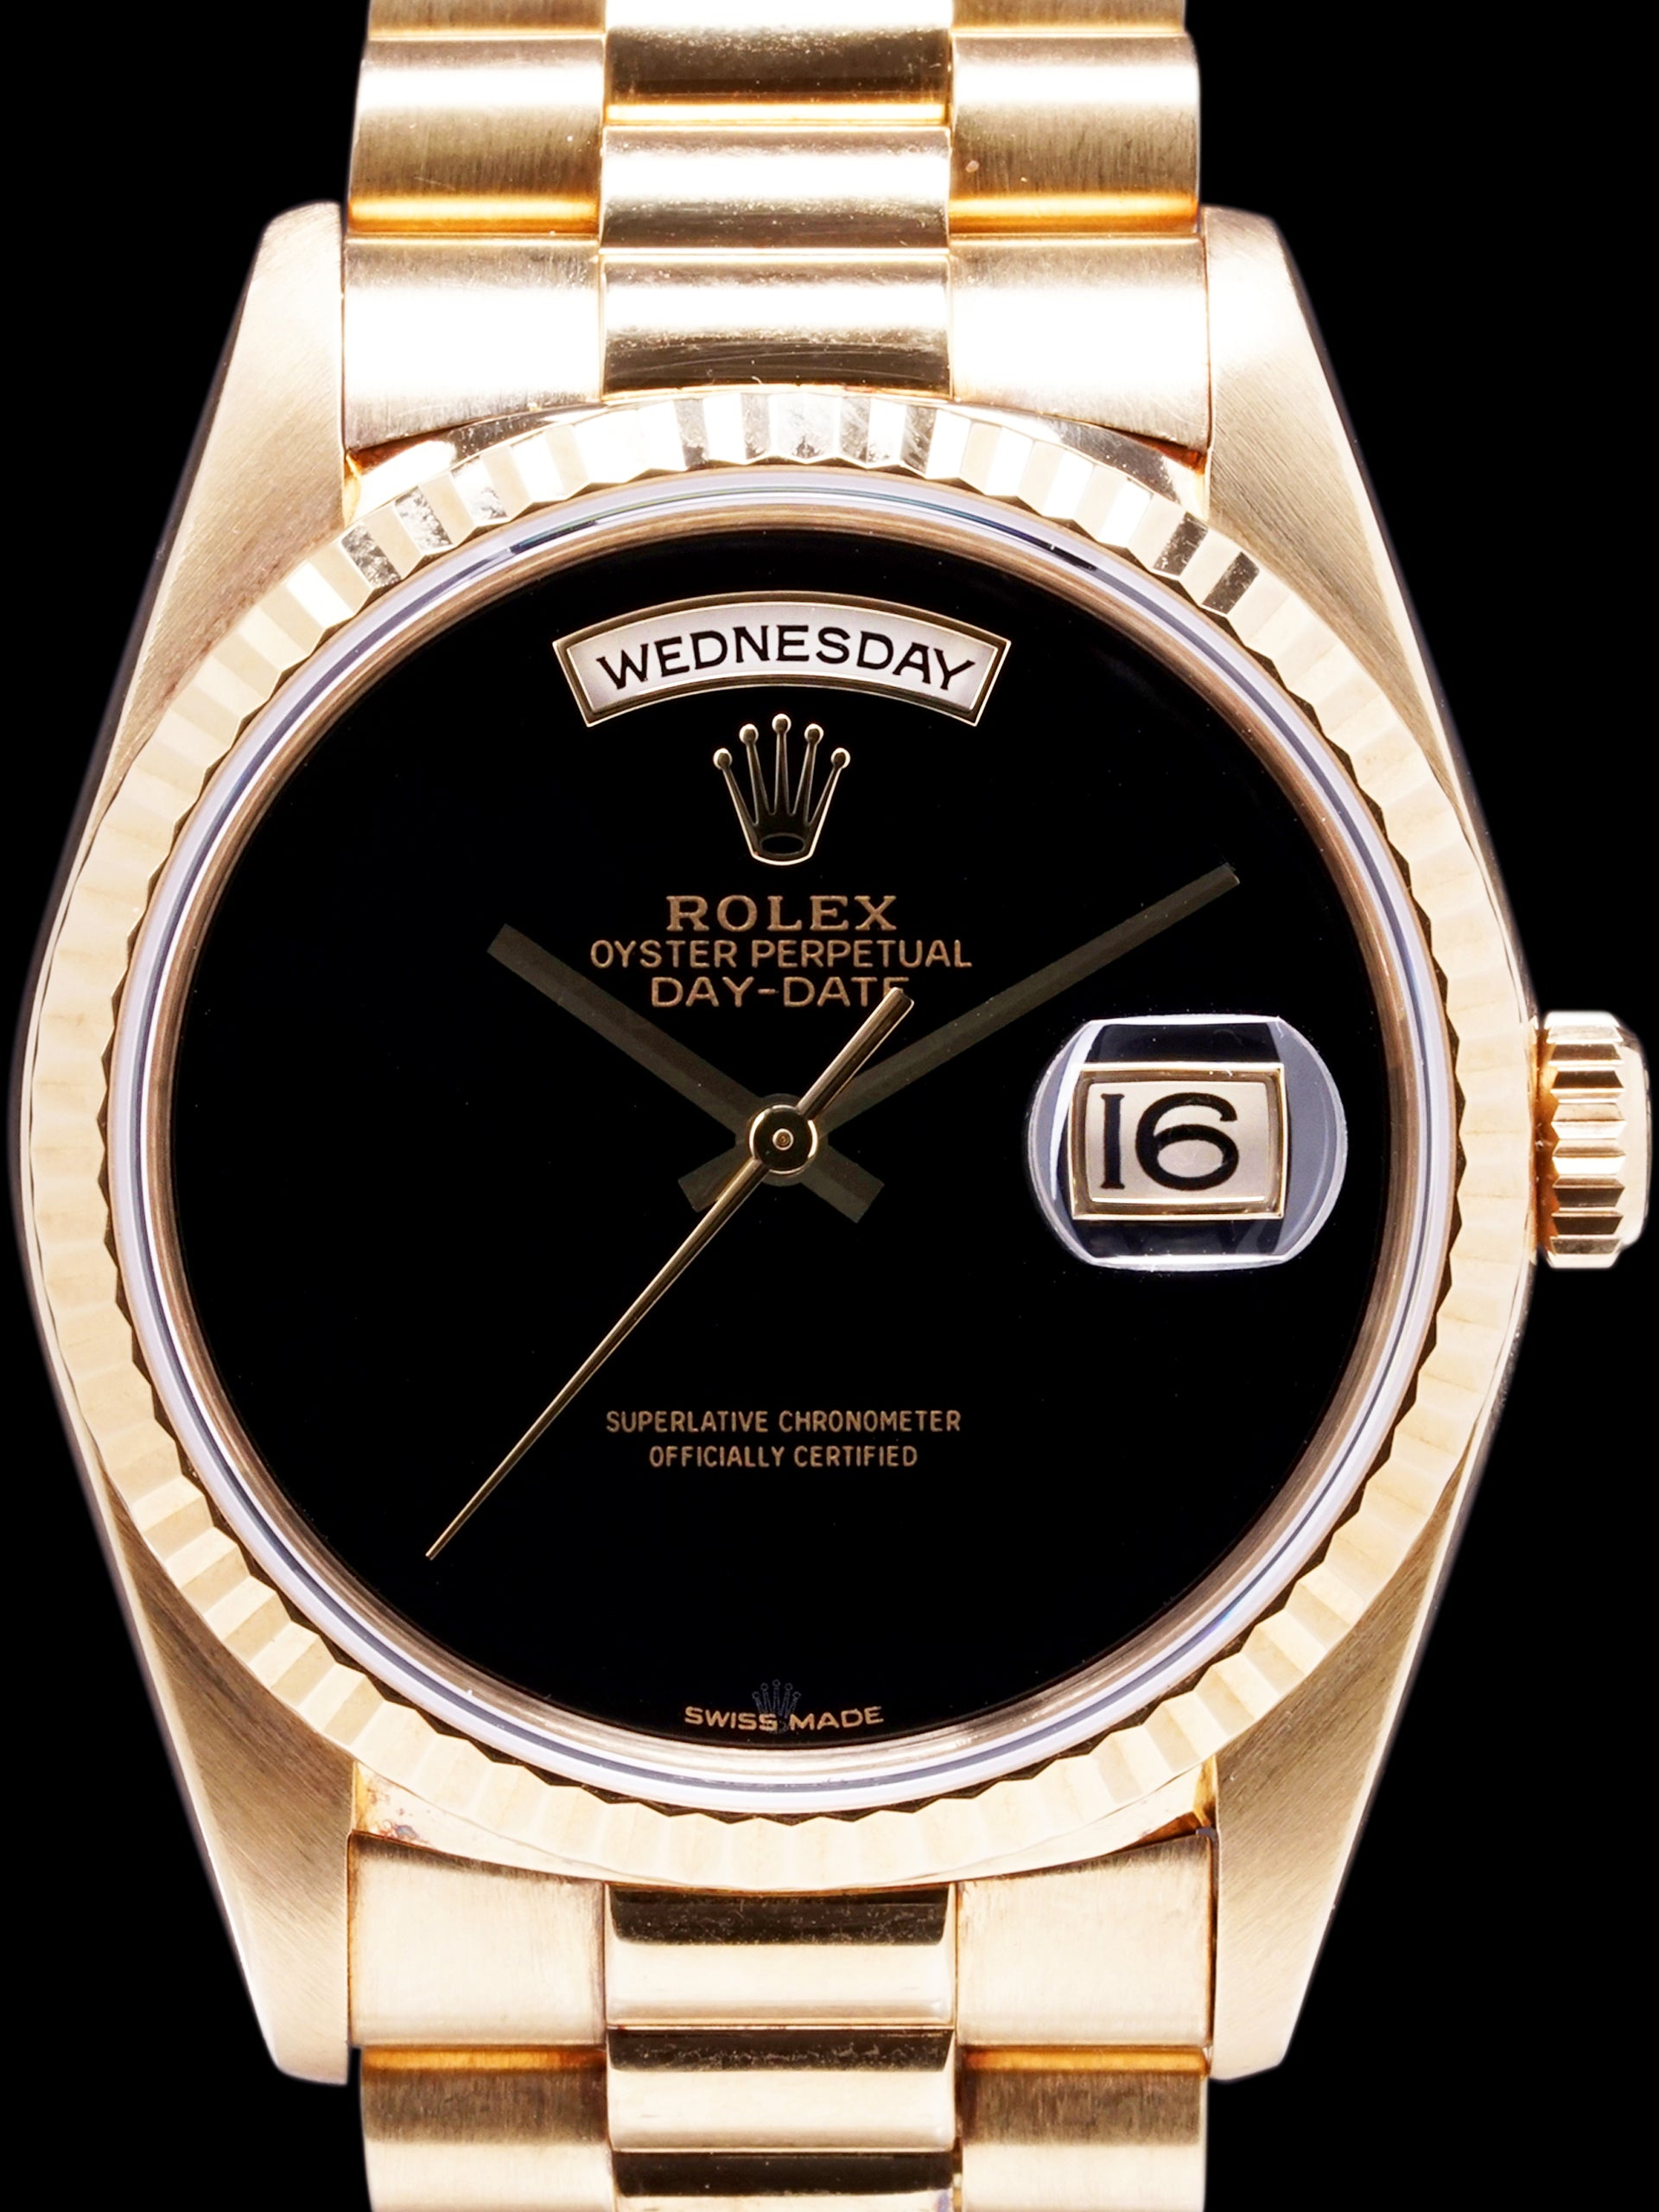 1991 Rolex Day-Date (Ref. 18238) 18k YG Onyx Dial W/ Box and Rolex Service Card